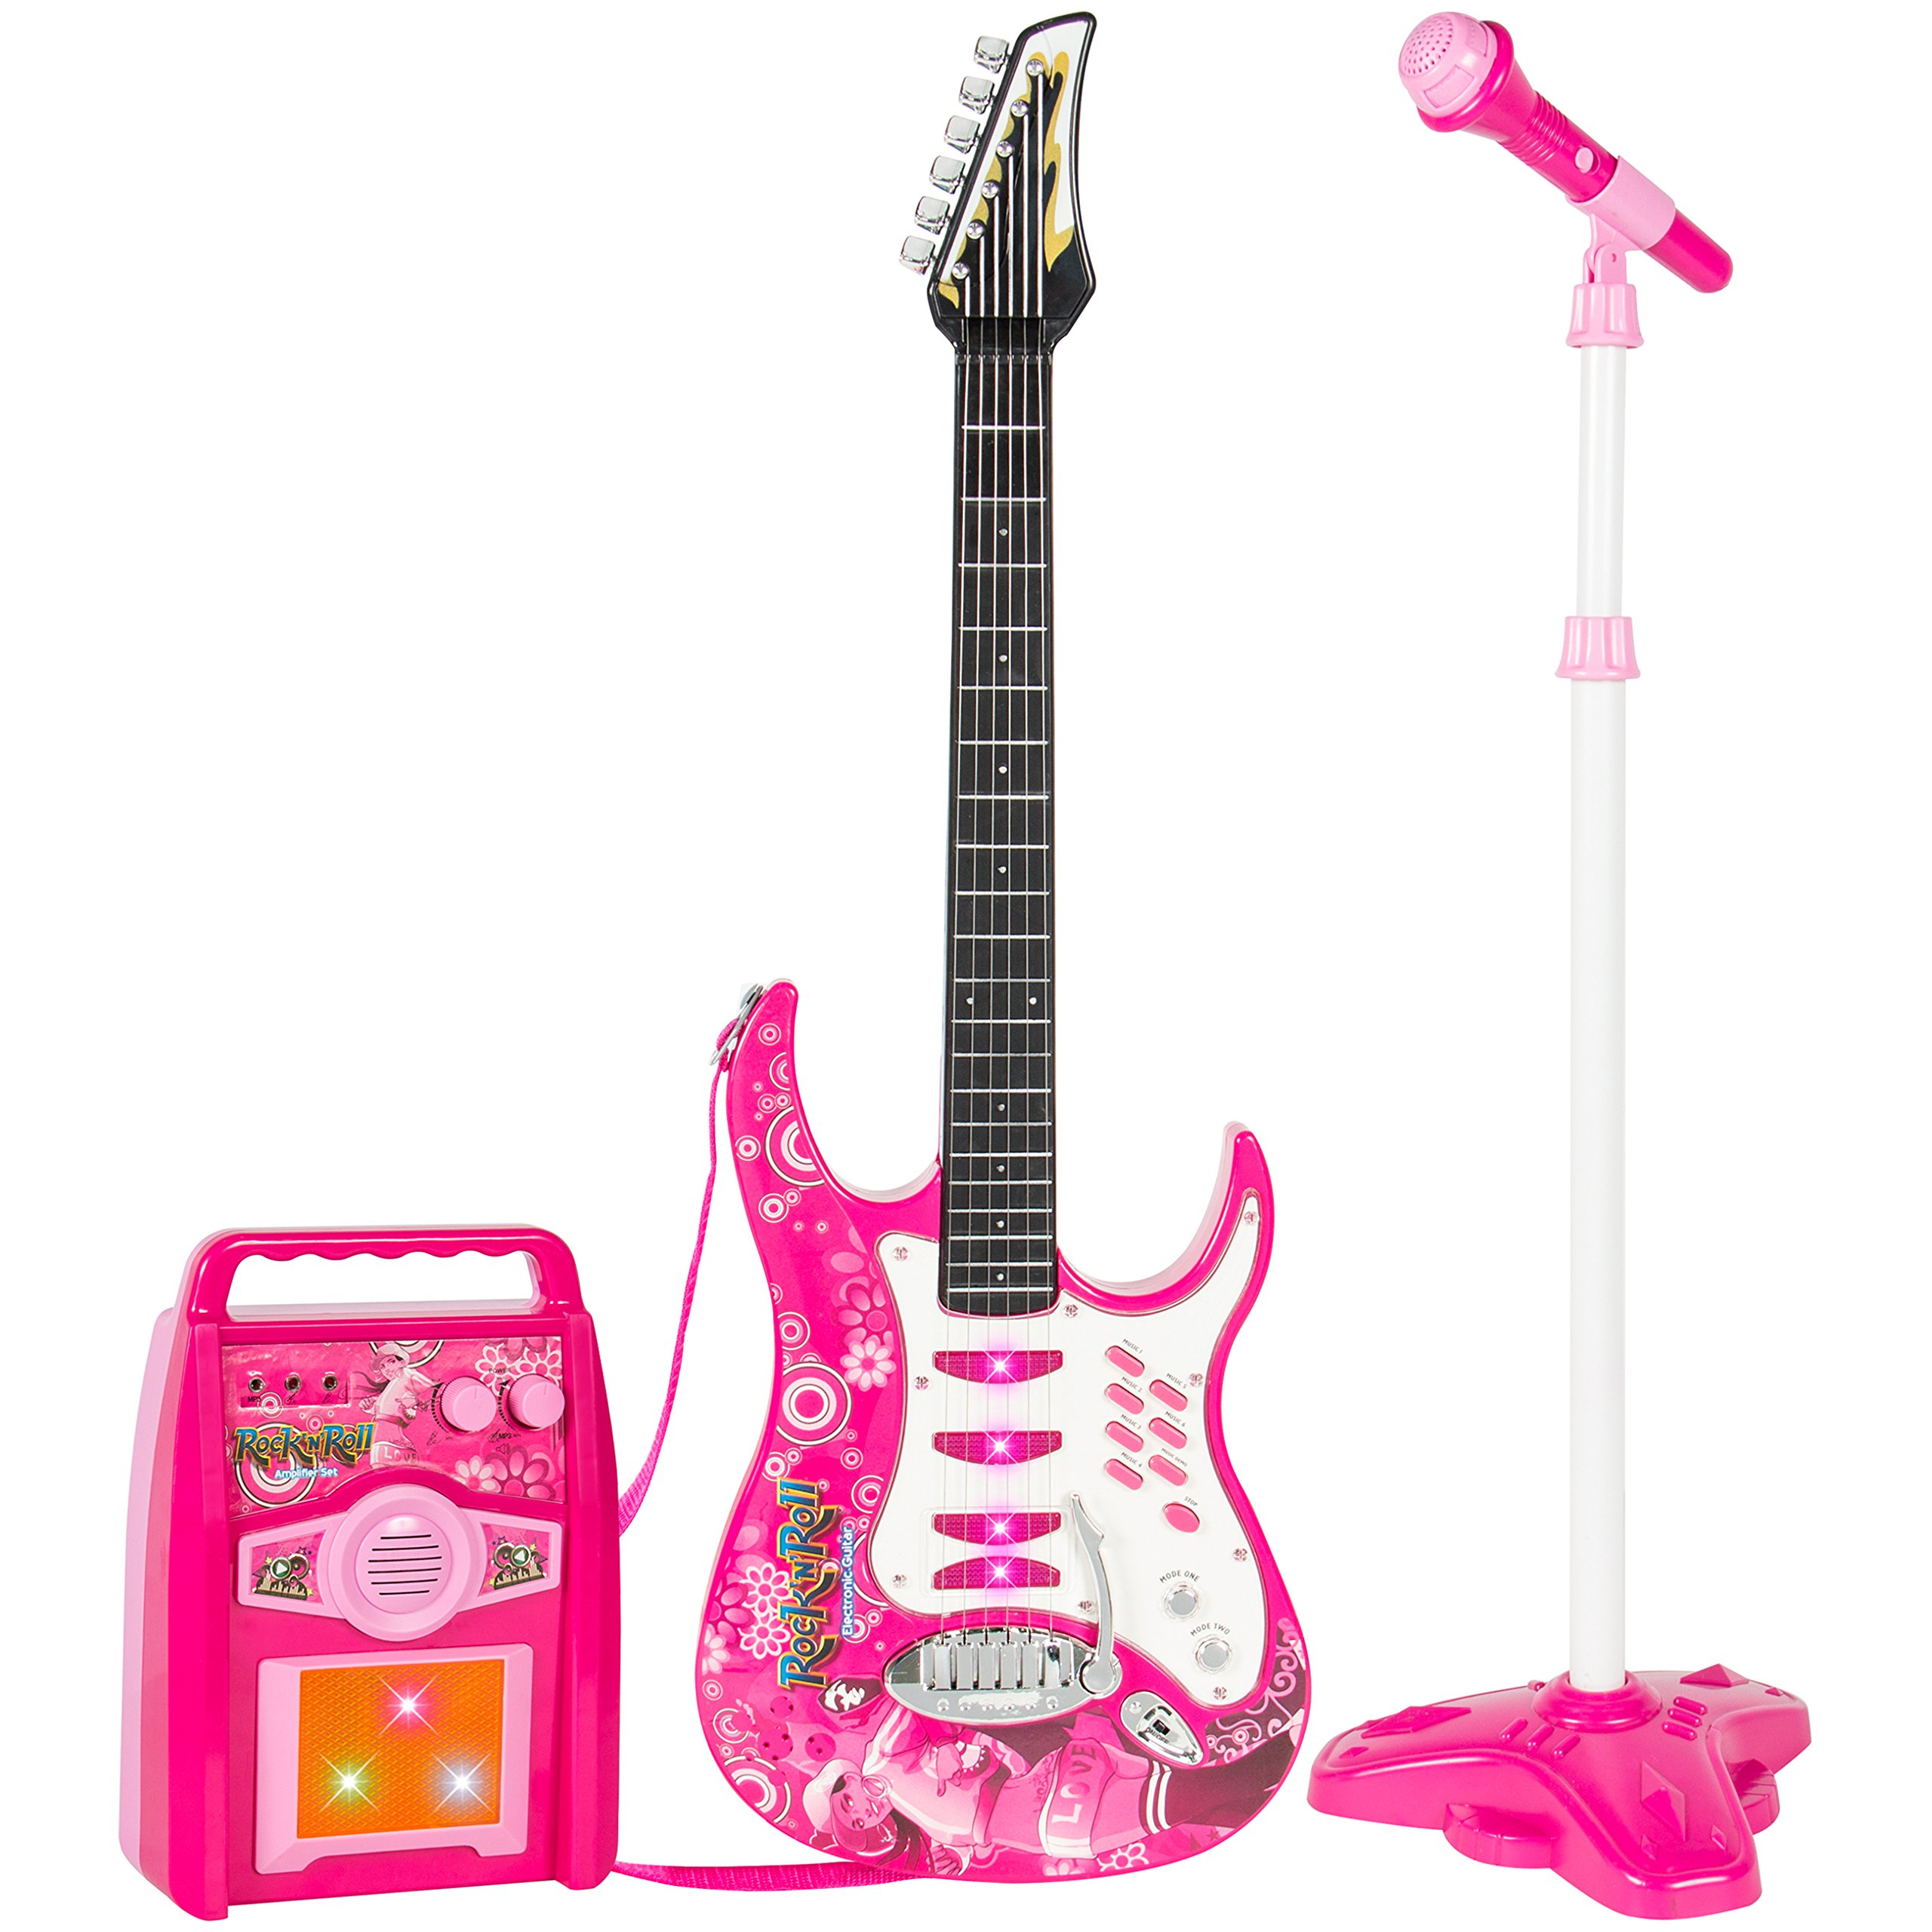 Best Choice Products Electronic Kid Guitar W/ MP3 Player & Microphone & Amplifier Children Play Set - Pink